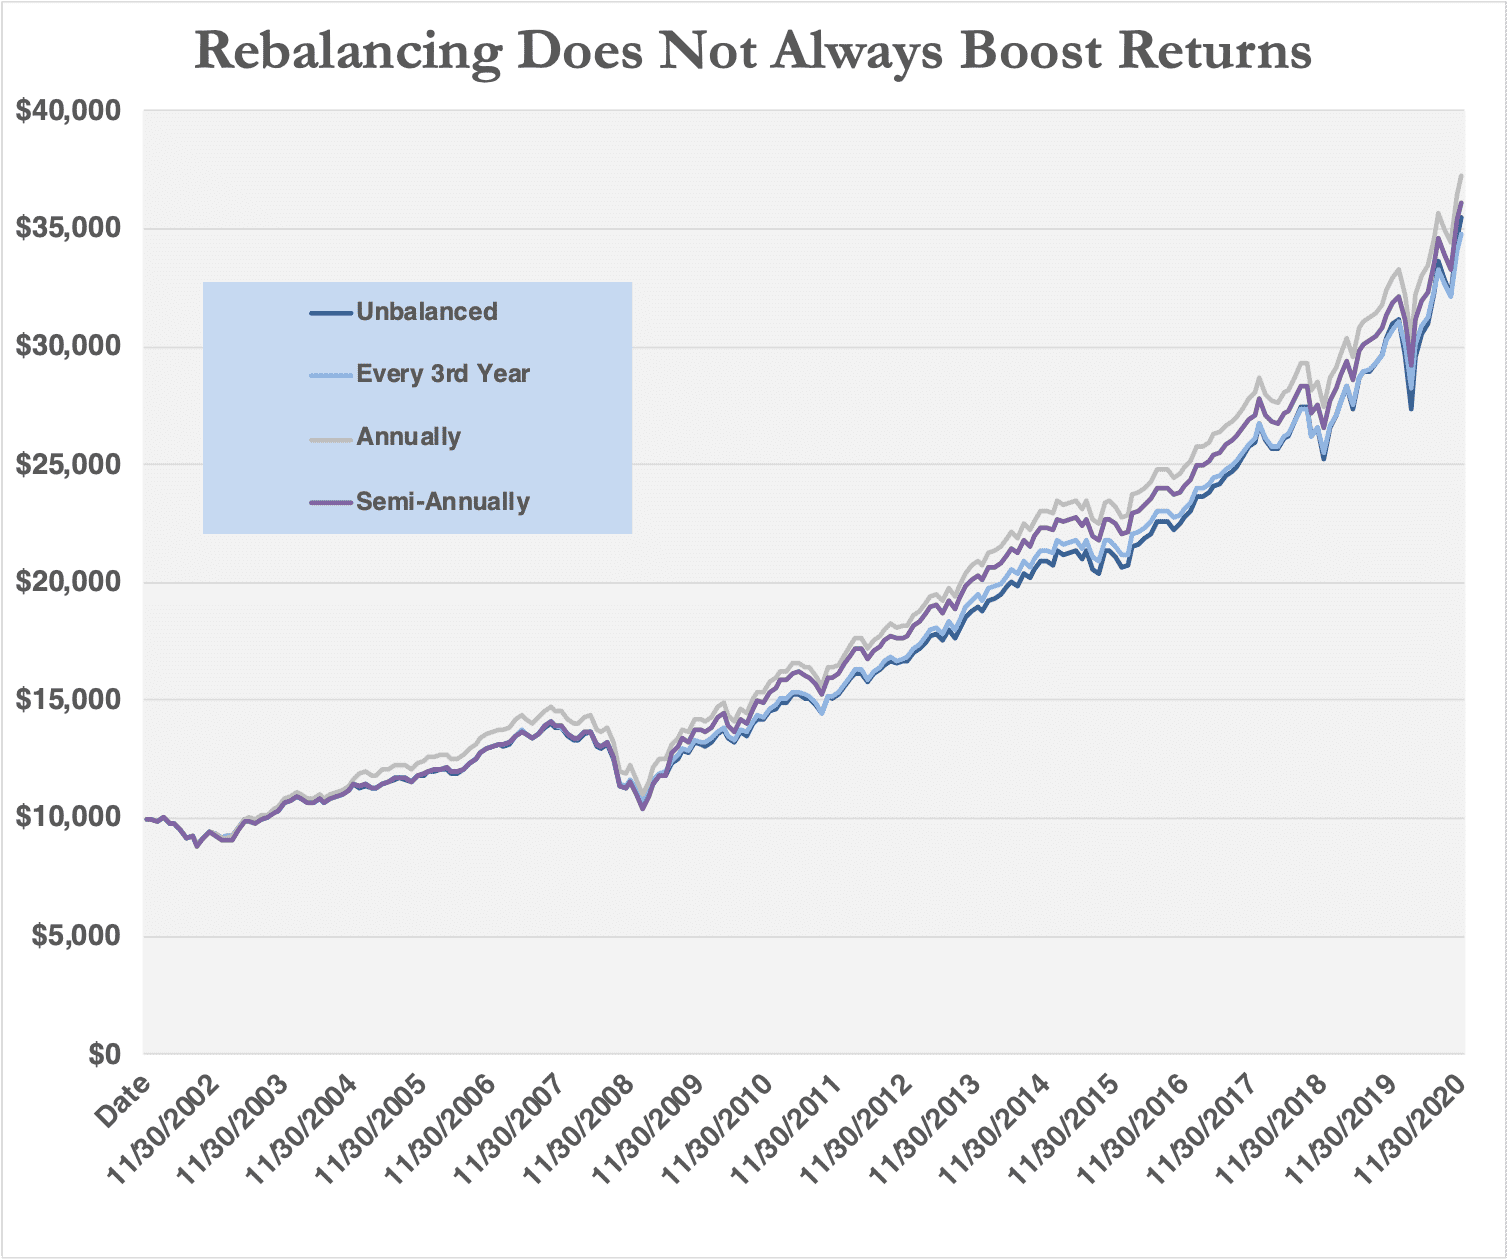 Chart demonstrating that rebalancing does not always boost returns